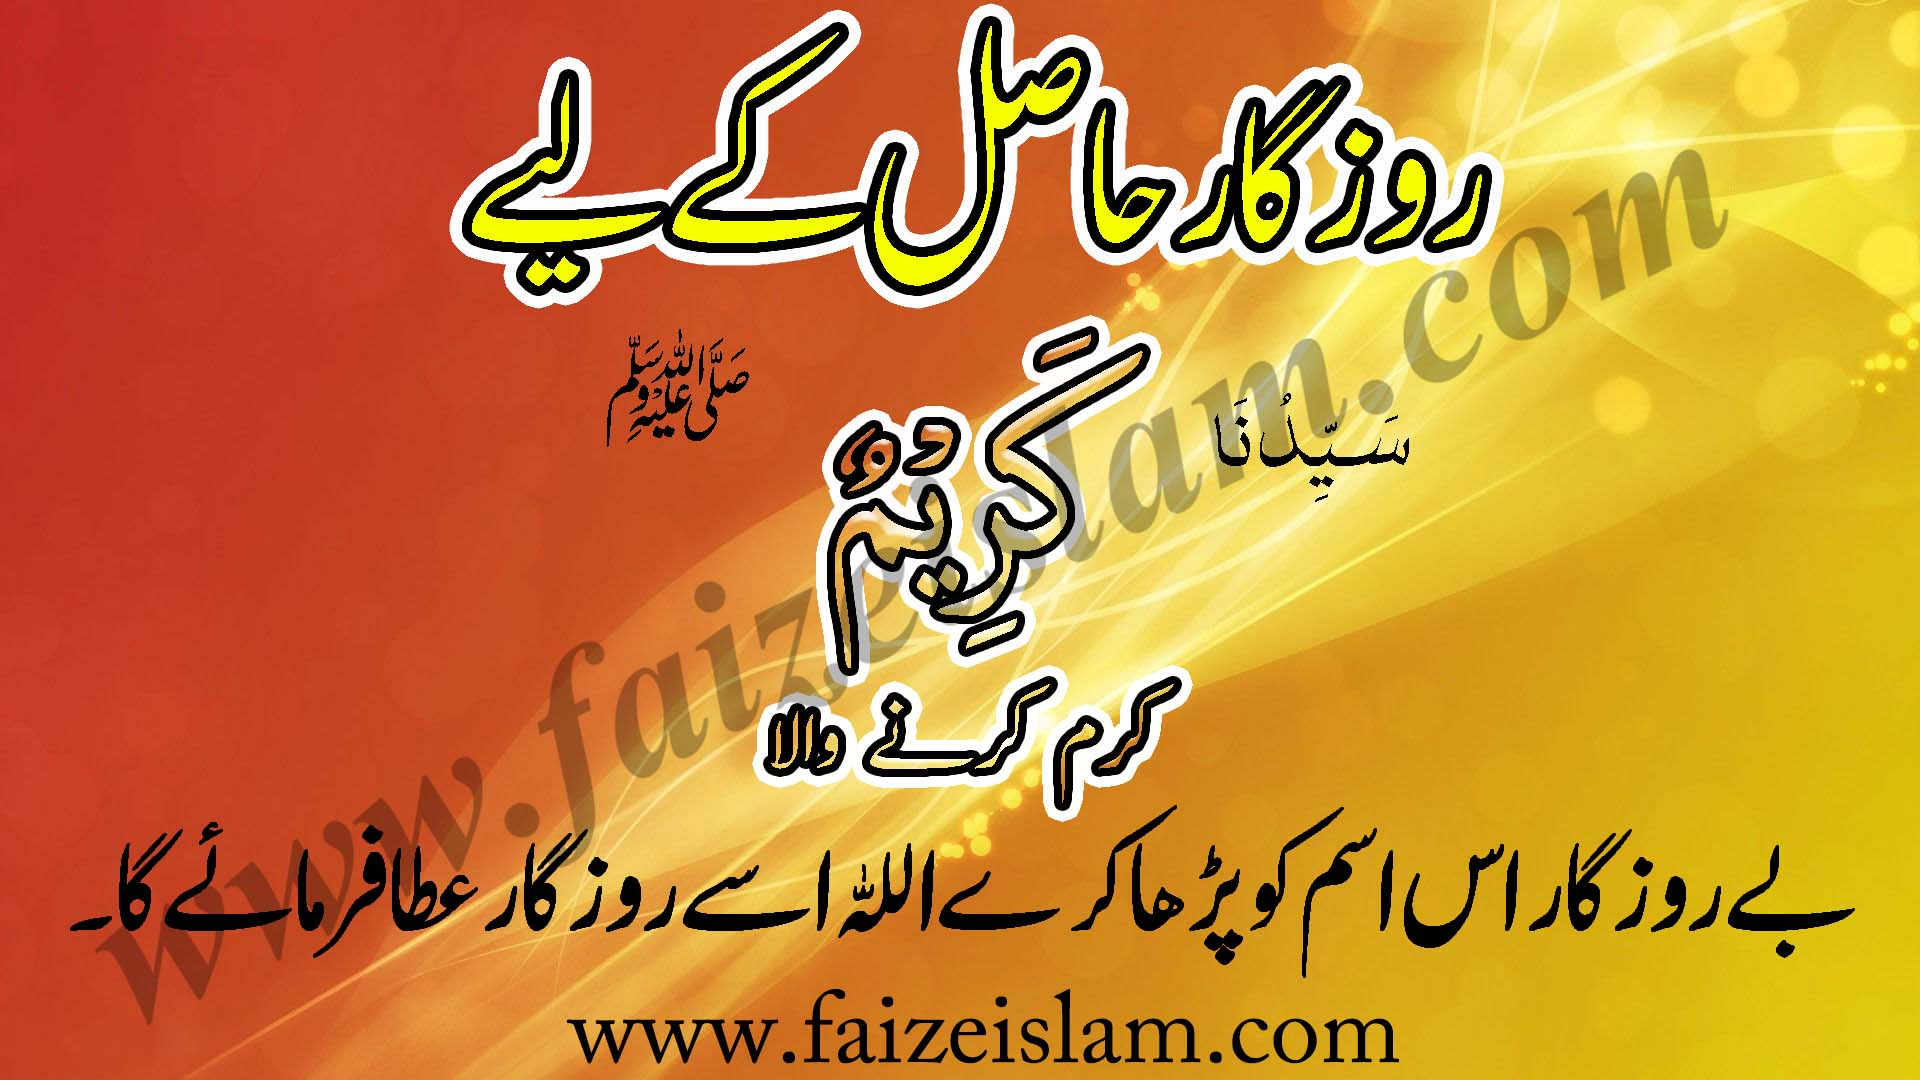 Wazifa for Job - Naukari Kay Liye Wazifa In Urdu